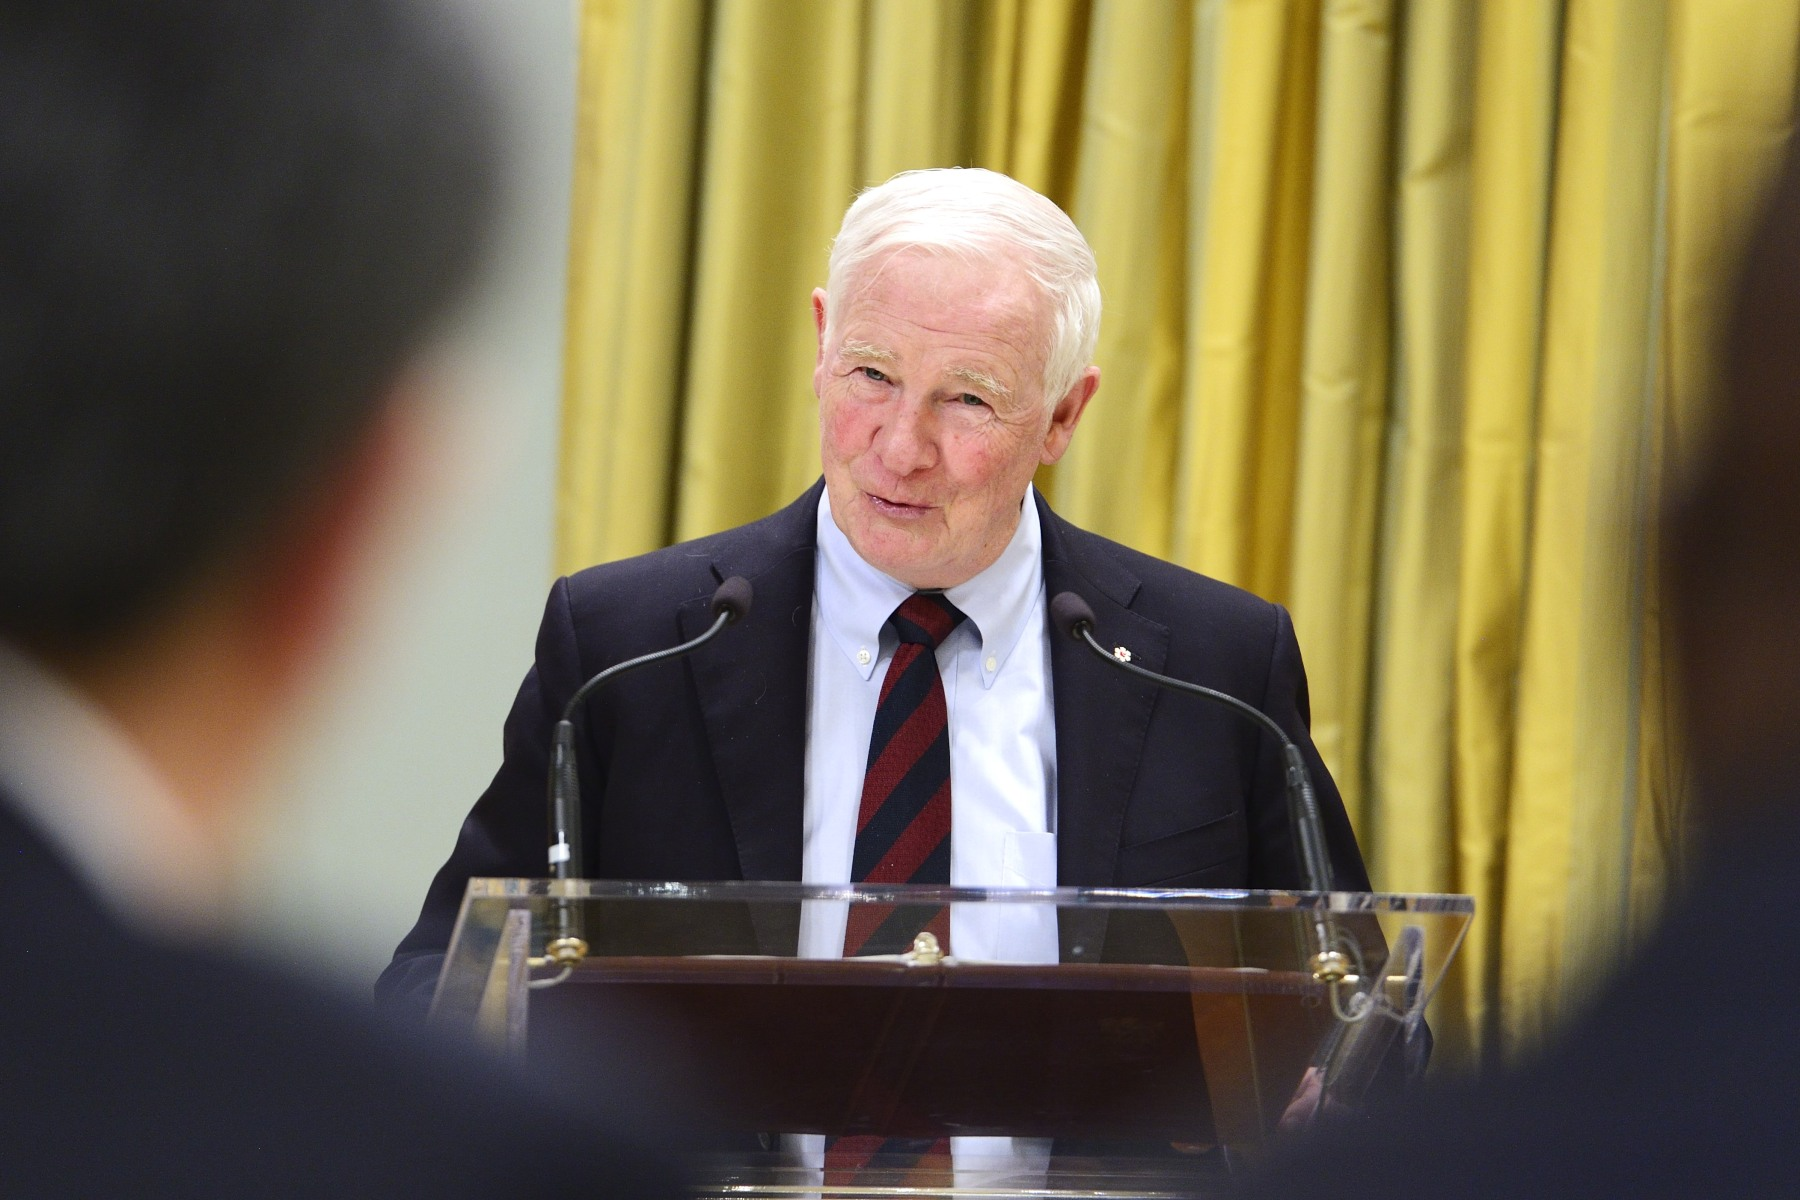 """The diplomatic community in Canada is a unique corps of individuals from countries around the world,"" said His Excellency. ""They share a desire to engage with Canada on a variety of topics. And though we may not always see eye to eye on every issue, we always find a way to work together for the benefit of all our peoples. I'm pleased all of you will be joining this corps today."""